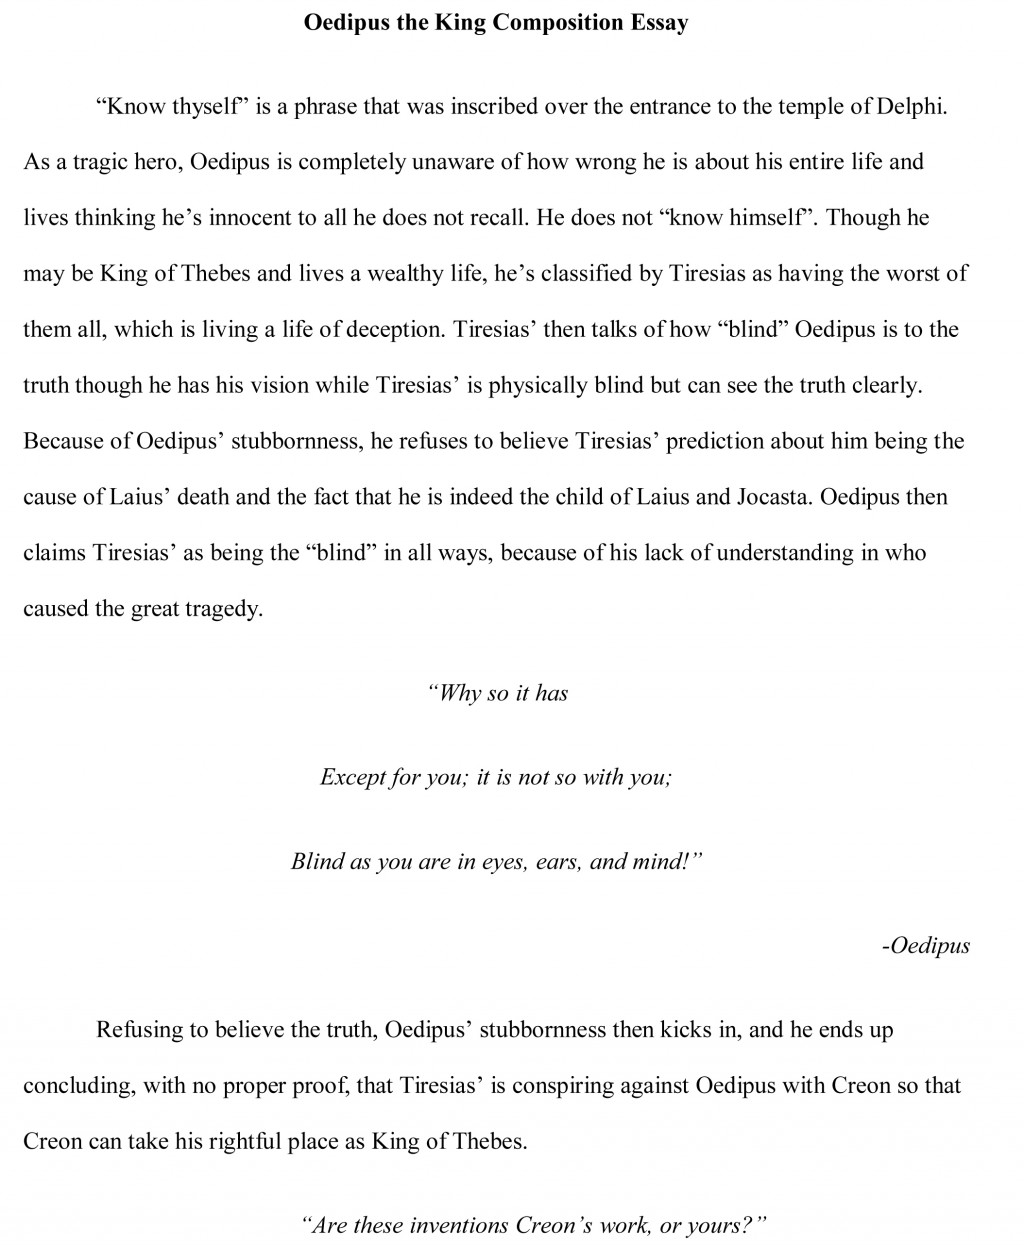 021 Oedipus Essay Free Sample Example Good Hook For Impressive A An Examples Of Argumentative On To Kill Mockingbird About Music Large